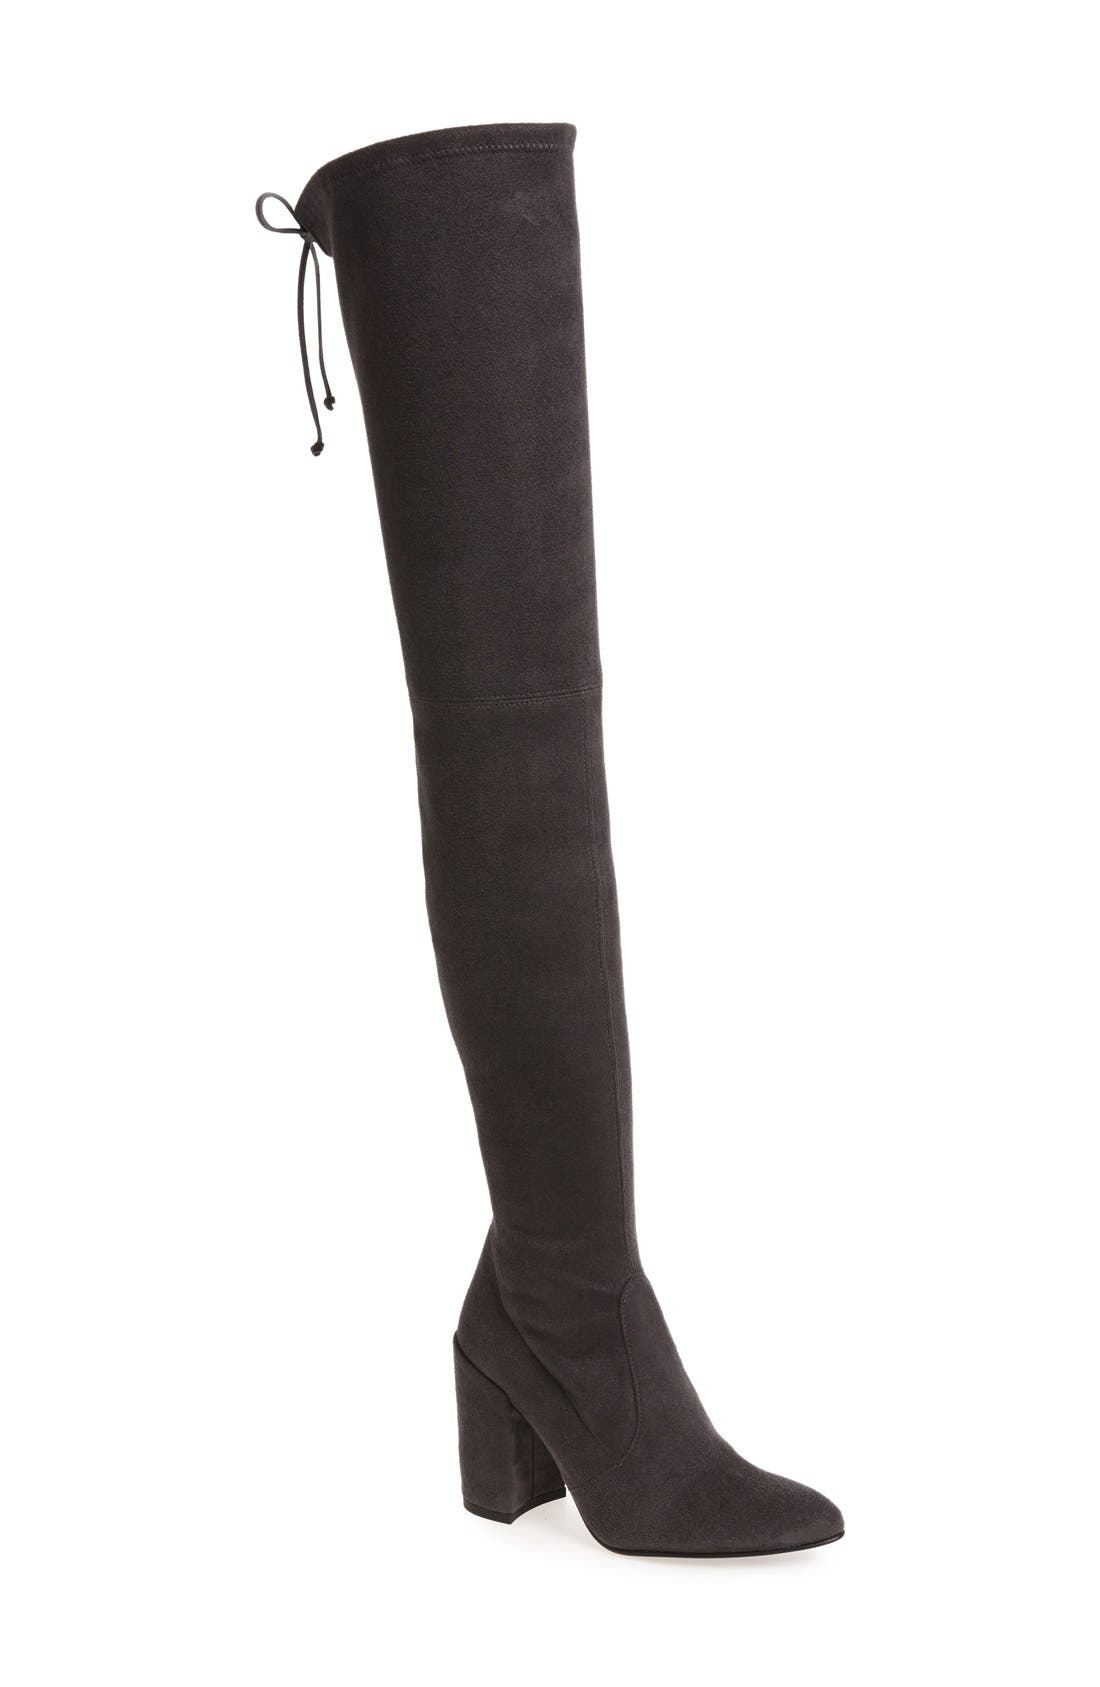 Alternate Image 1 Selected - Stuart Weitzman 'All Legs' Thigh High Boot (Women)